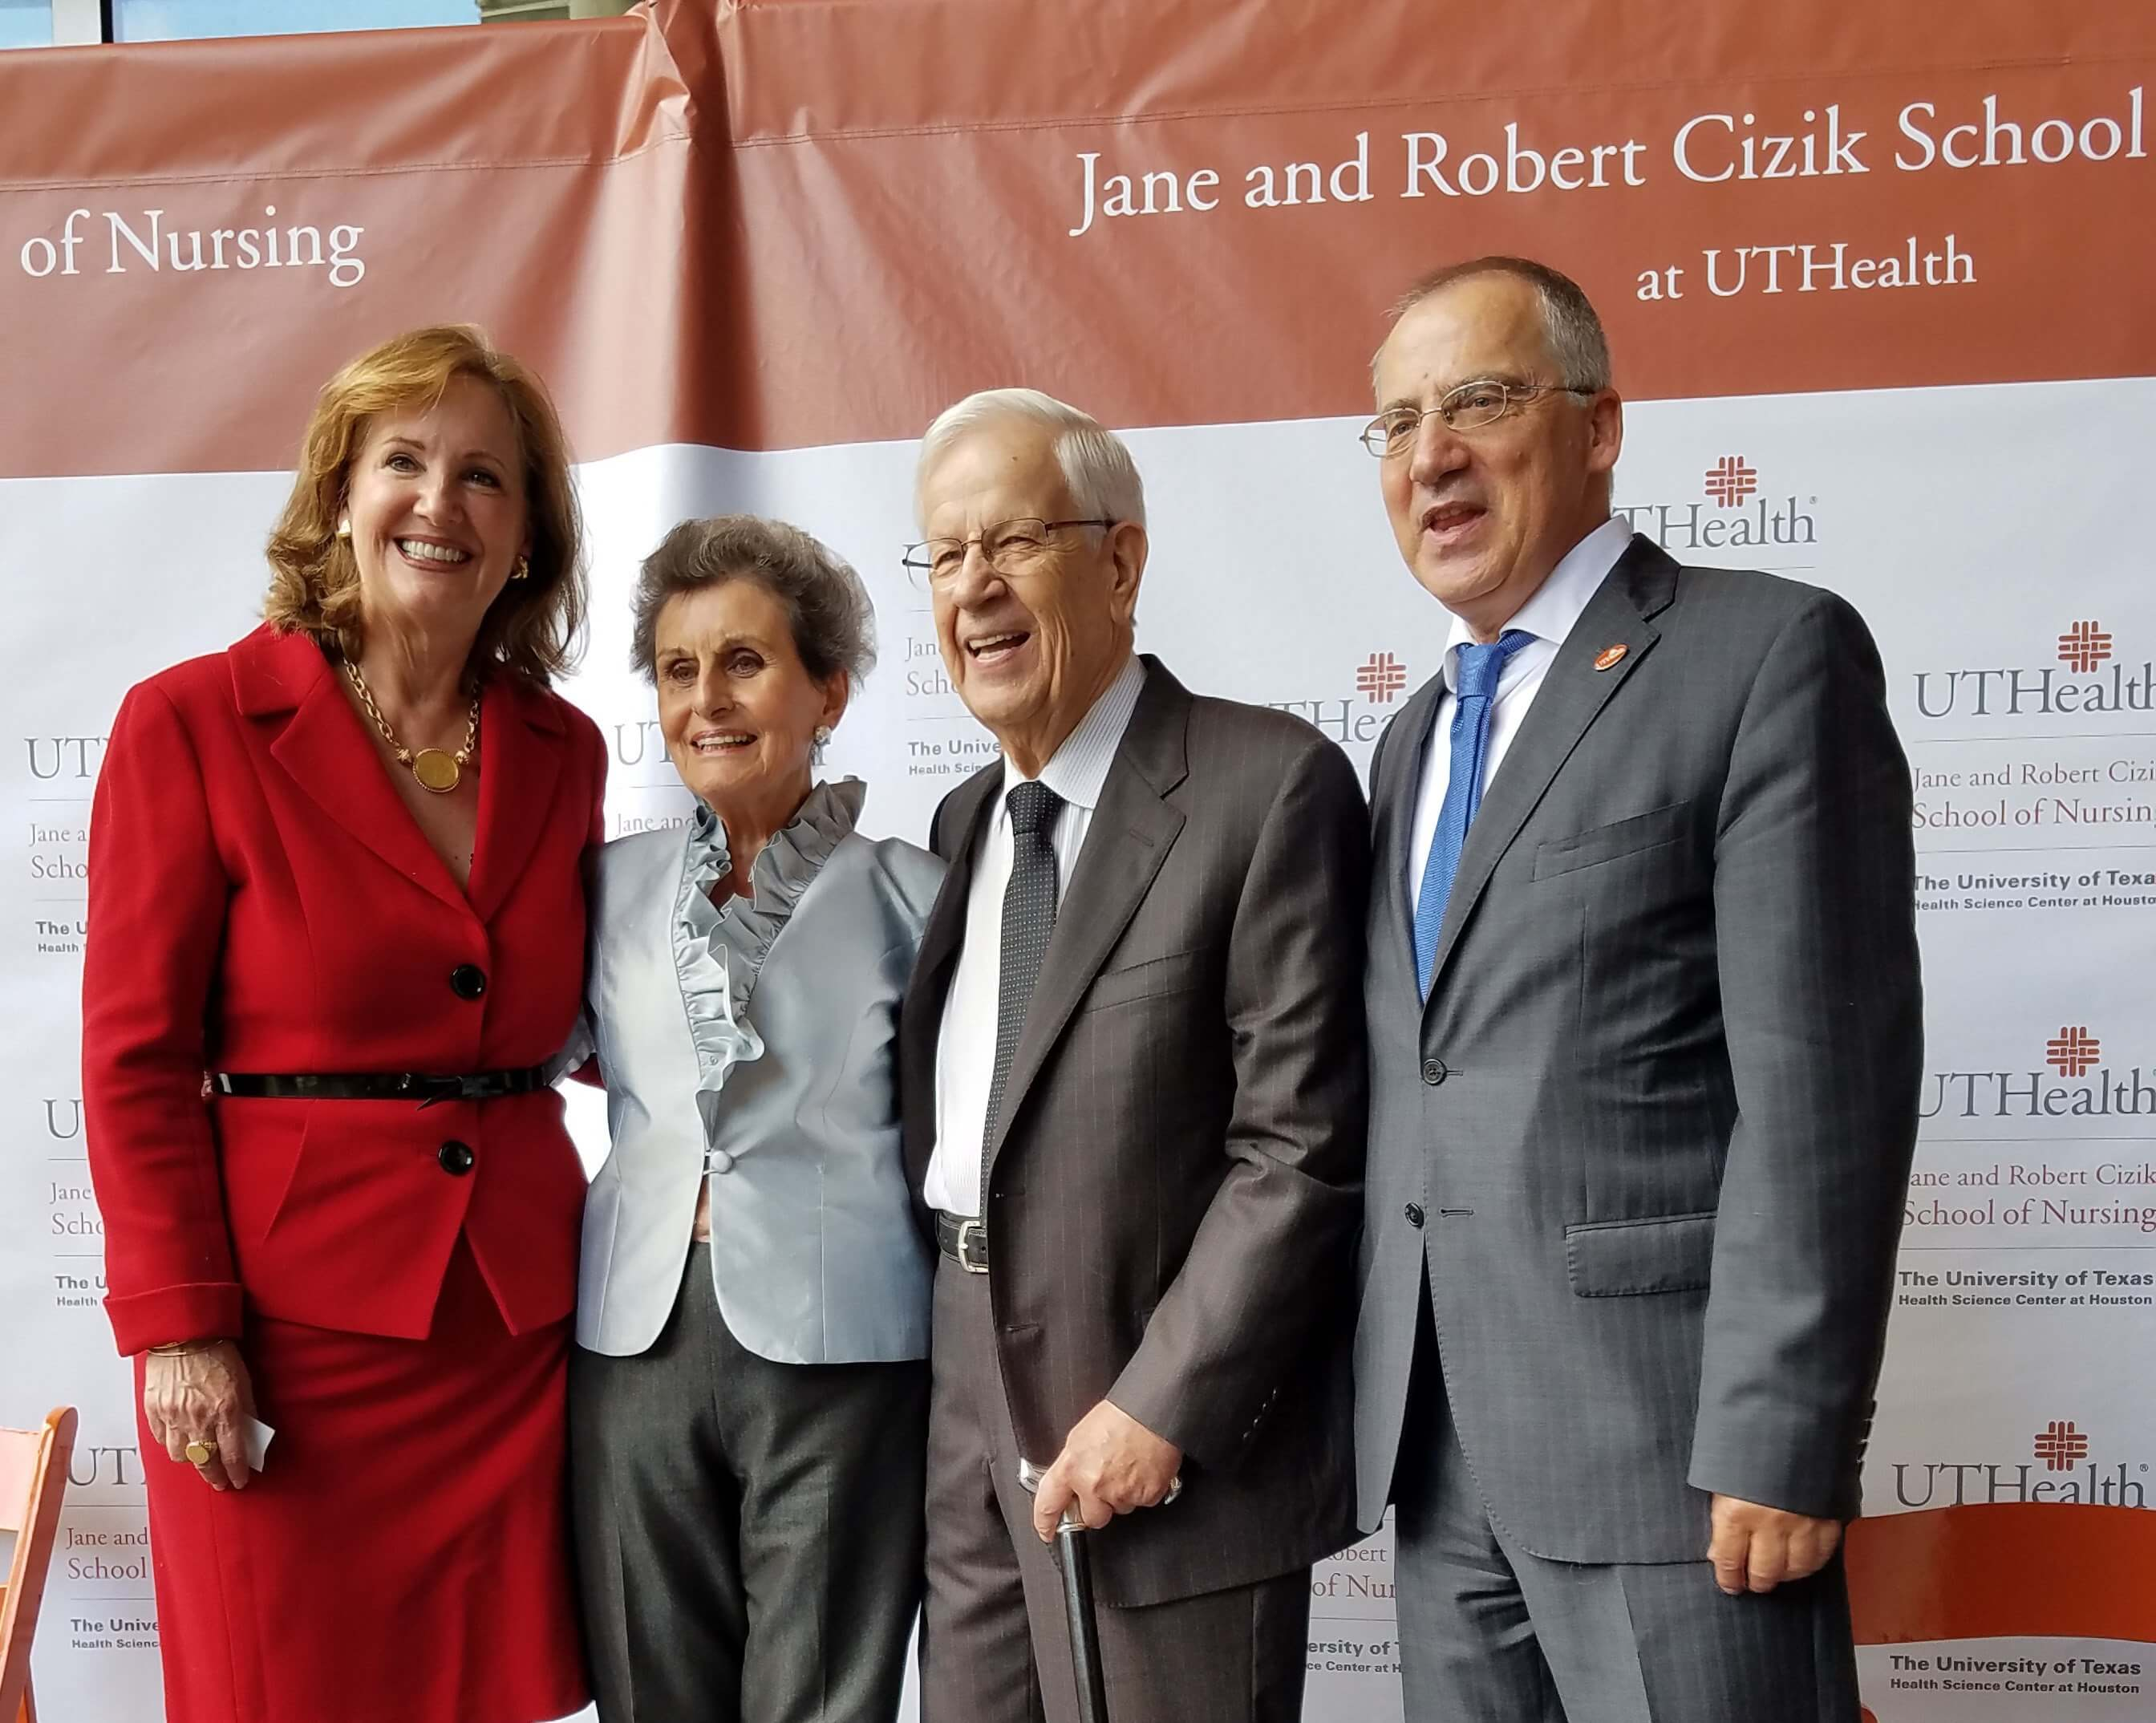 From left to right, Lorraine Frazier, Ph.D., RN, Dean of the Jane and Robert Cizik School of Nursing; Jane and Robert Cizik; and UTHealth President Giuseppe N. Colasurdo, M.D.